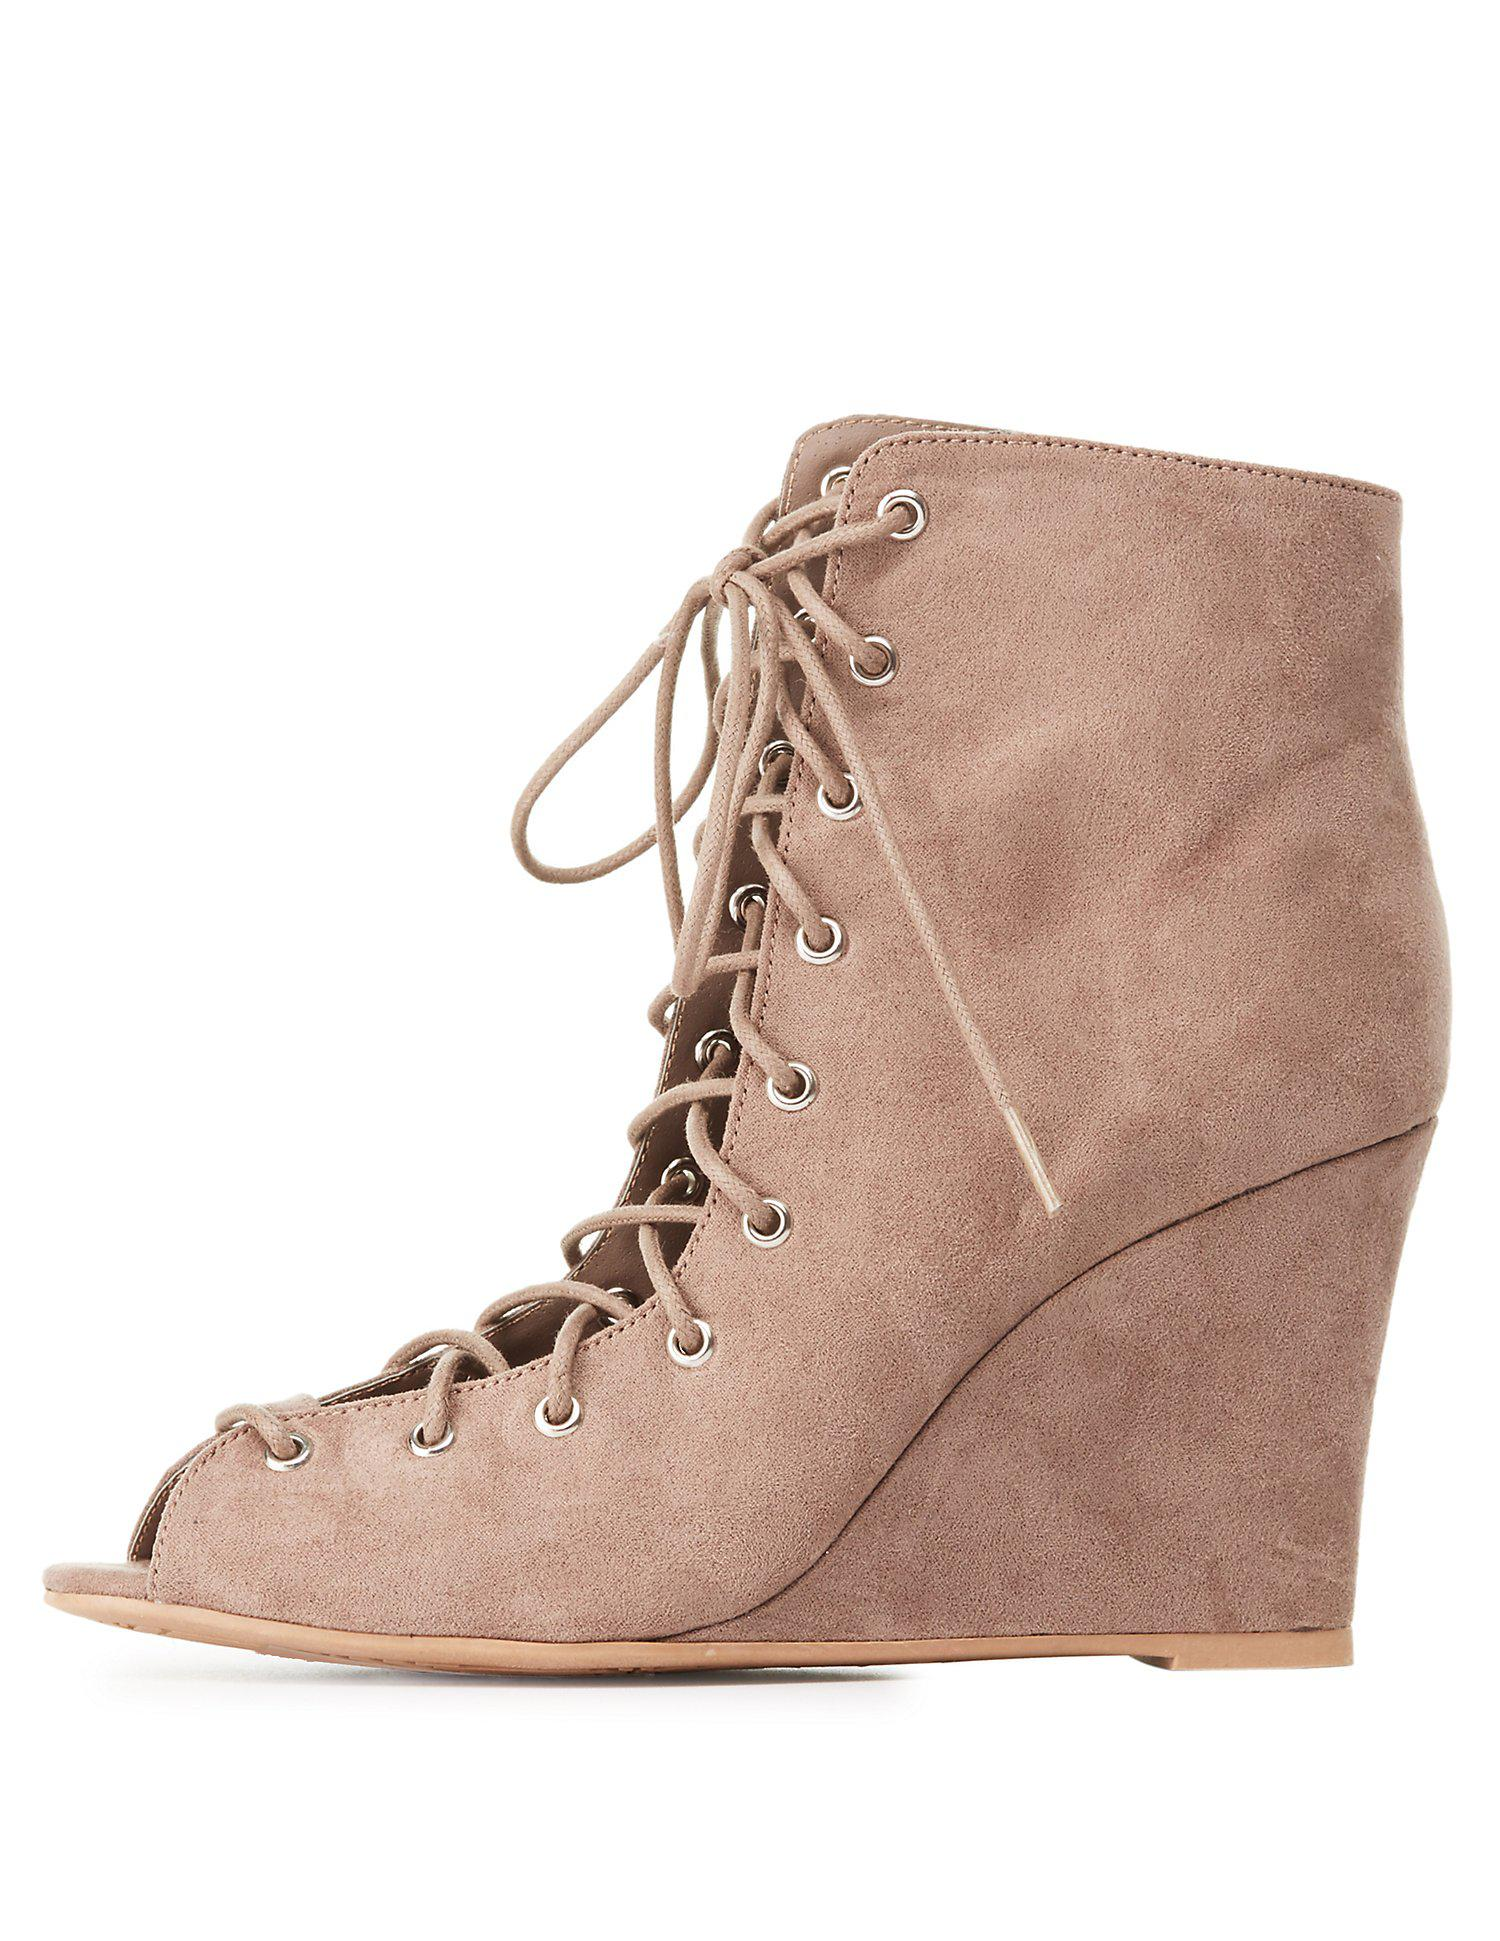 55422c181ba Lyst - Charlotte Russe Qupid Lace-up Wedge Booties in Brown